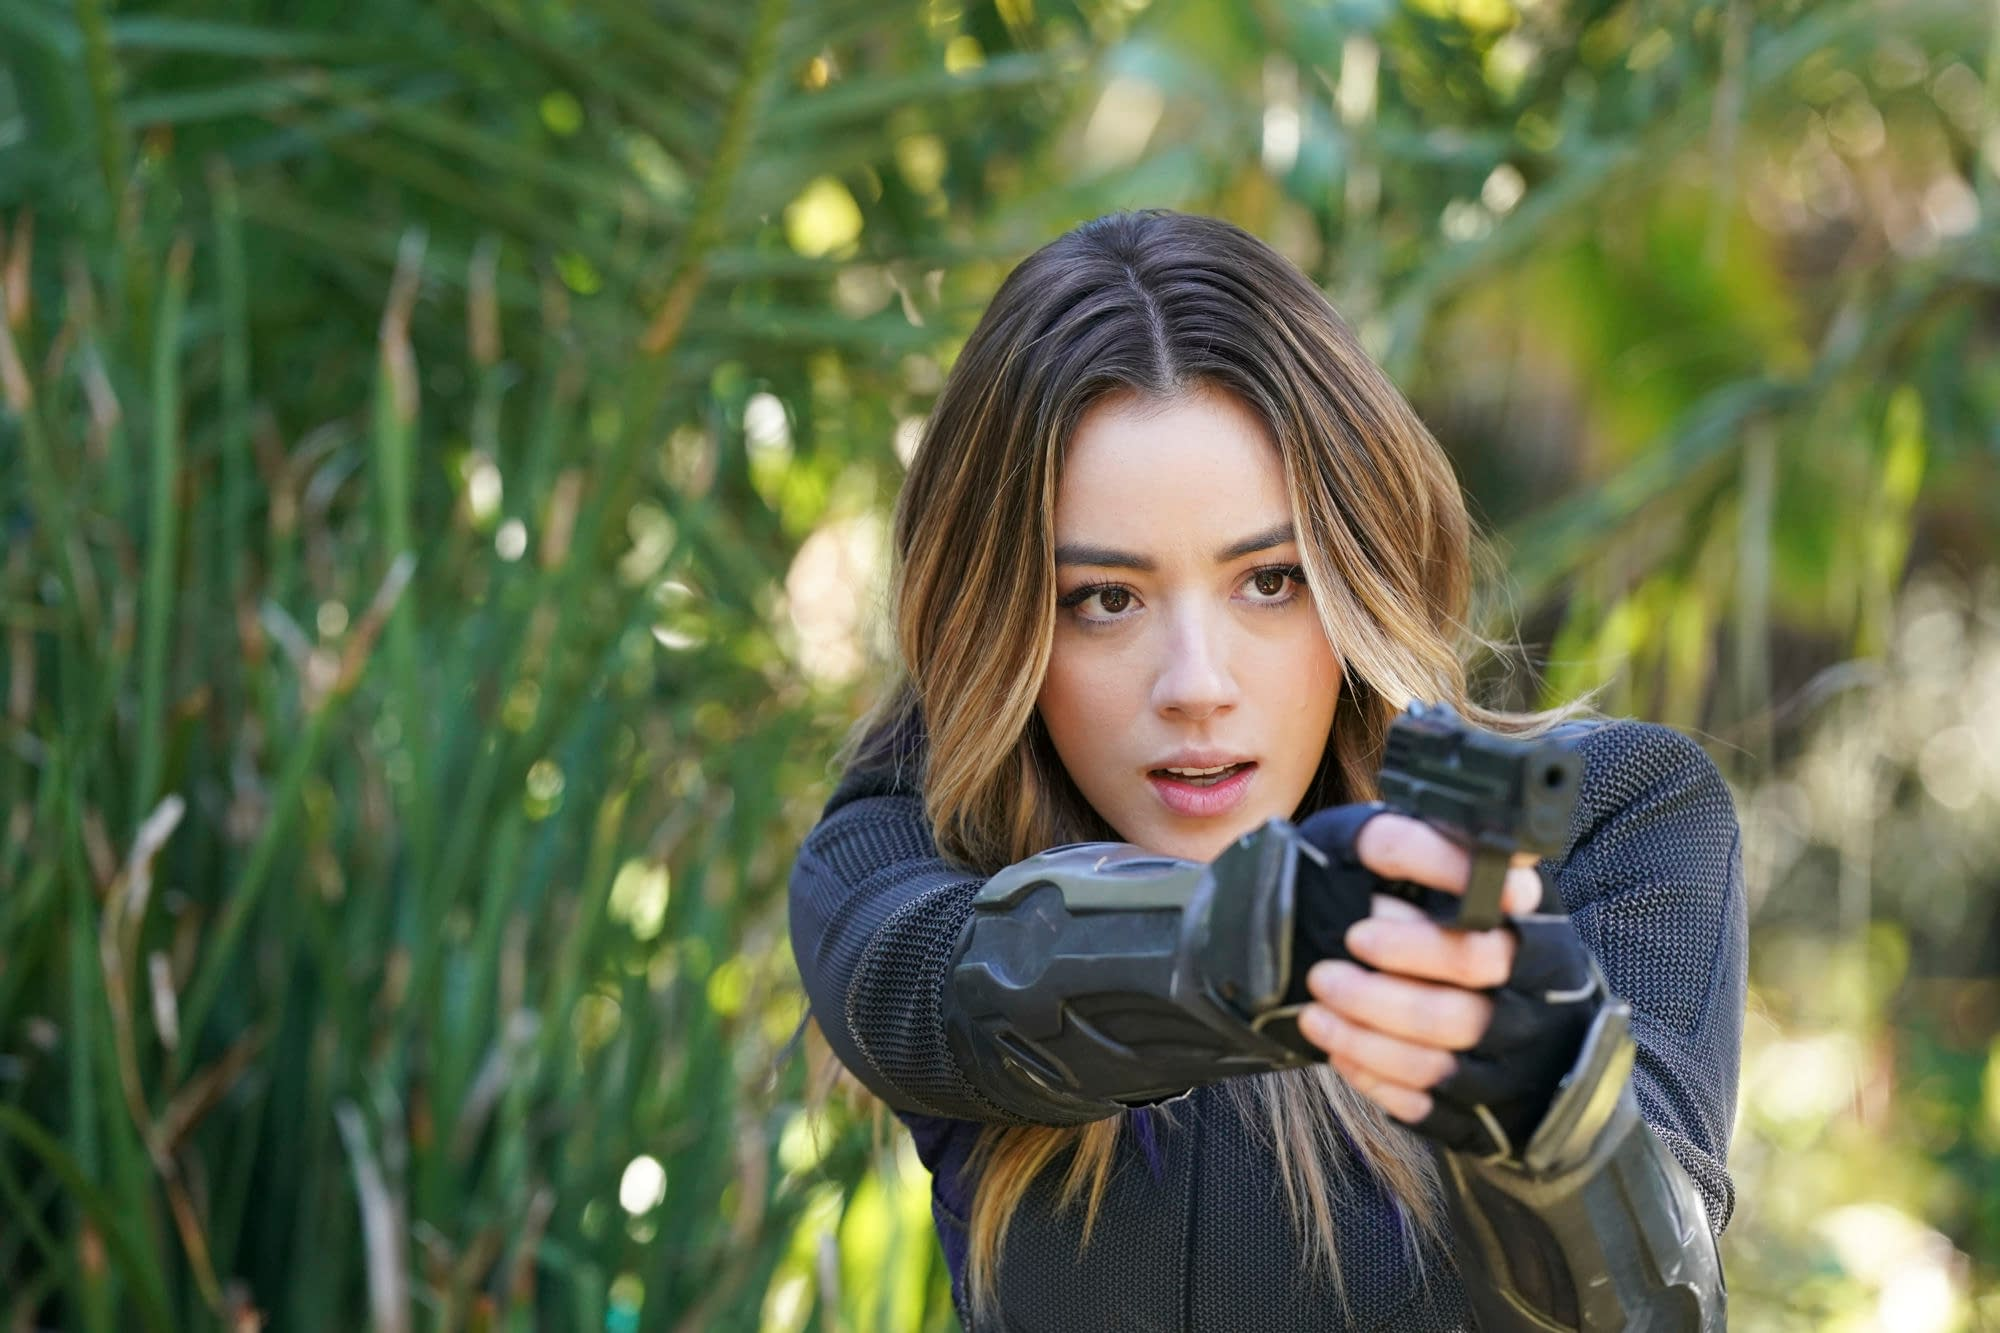 MARVEL'S AGENTS OF S.H.I.E.L.D. on ABC